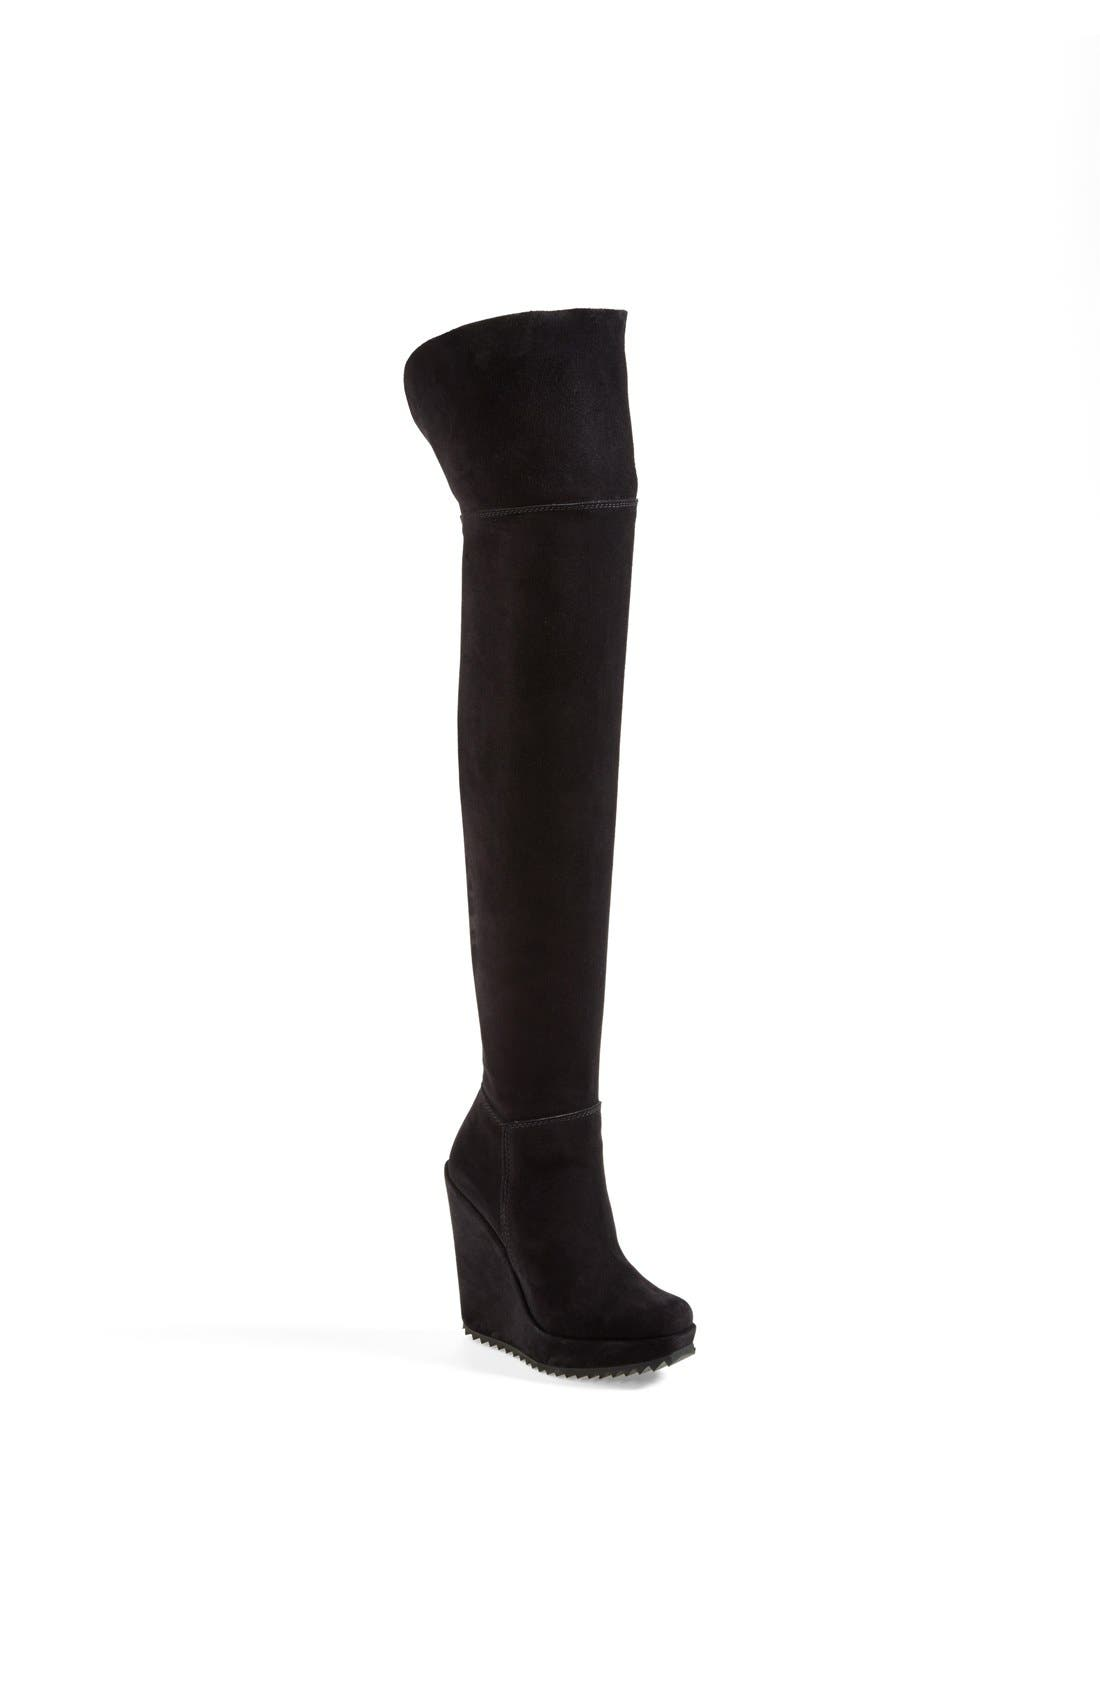 'Vanne' Over-the-Knee Boot,                         Main,                         color, 001